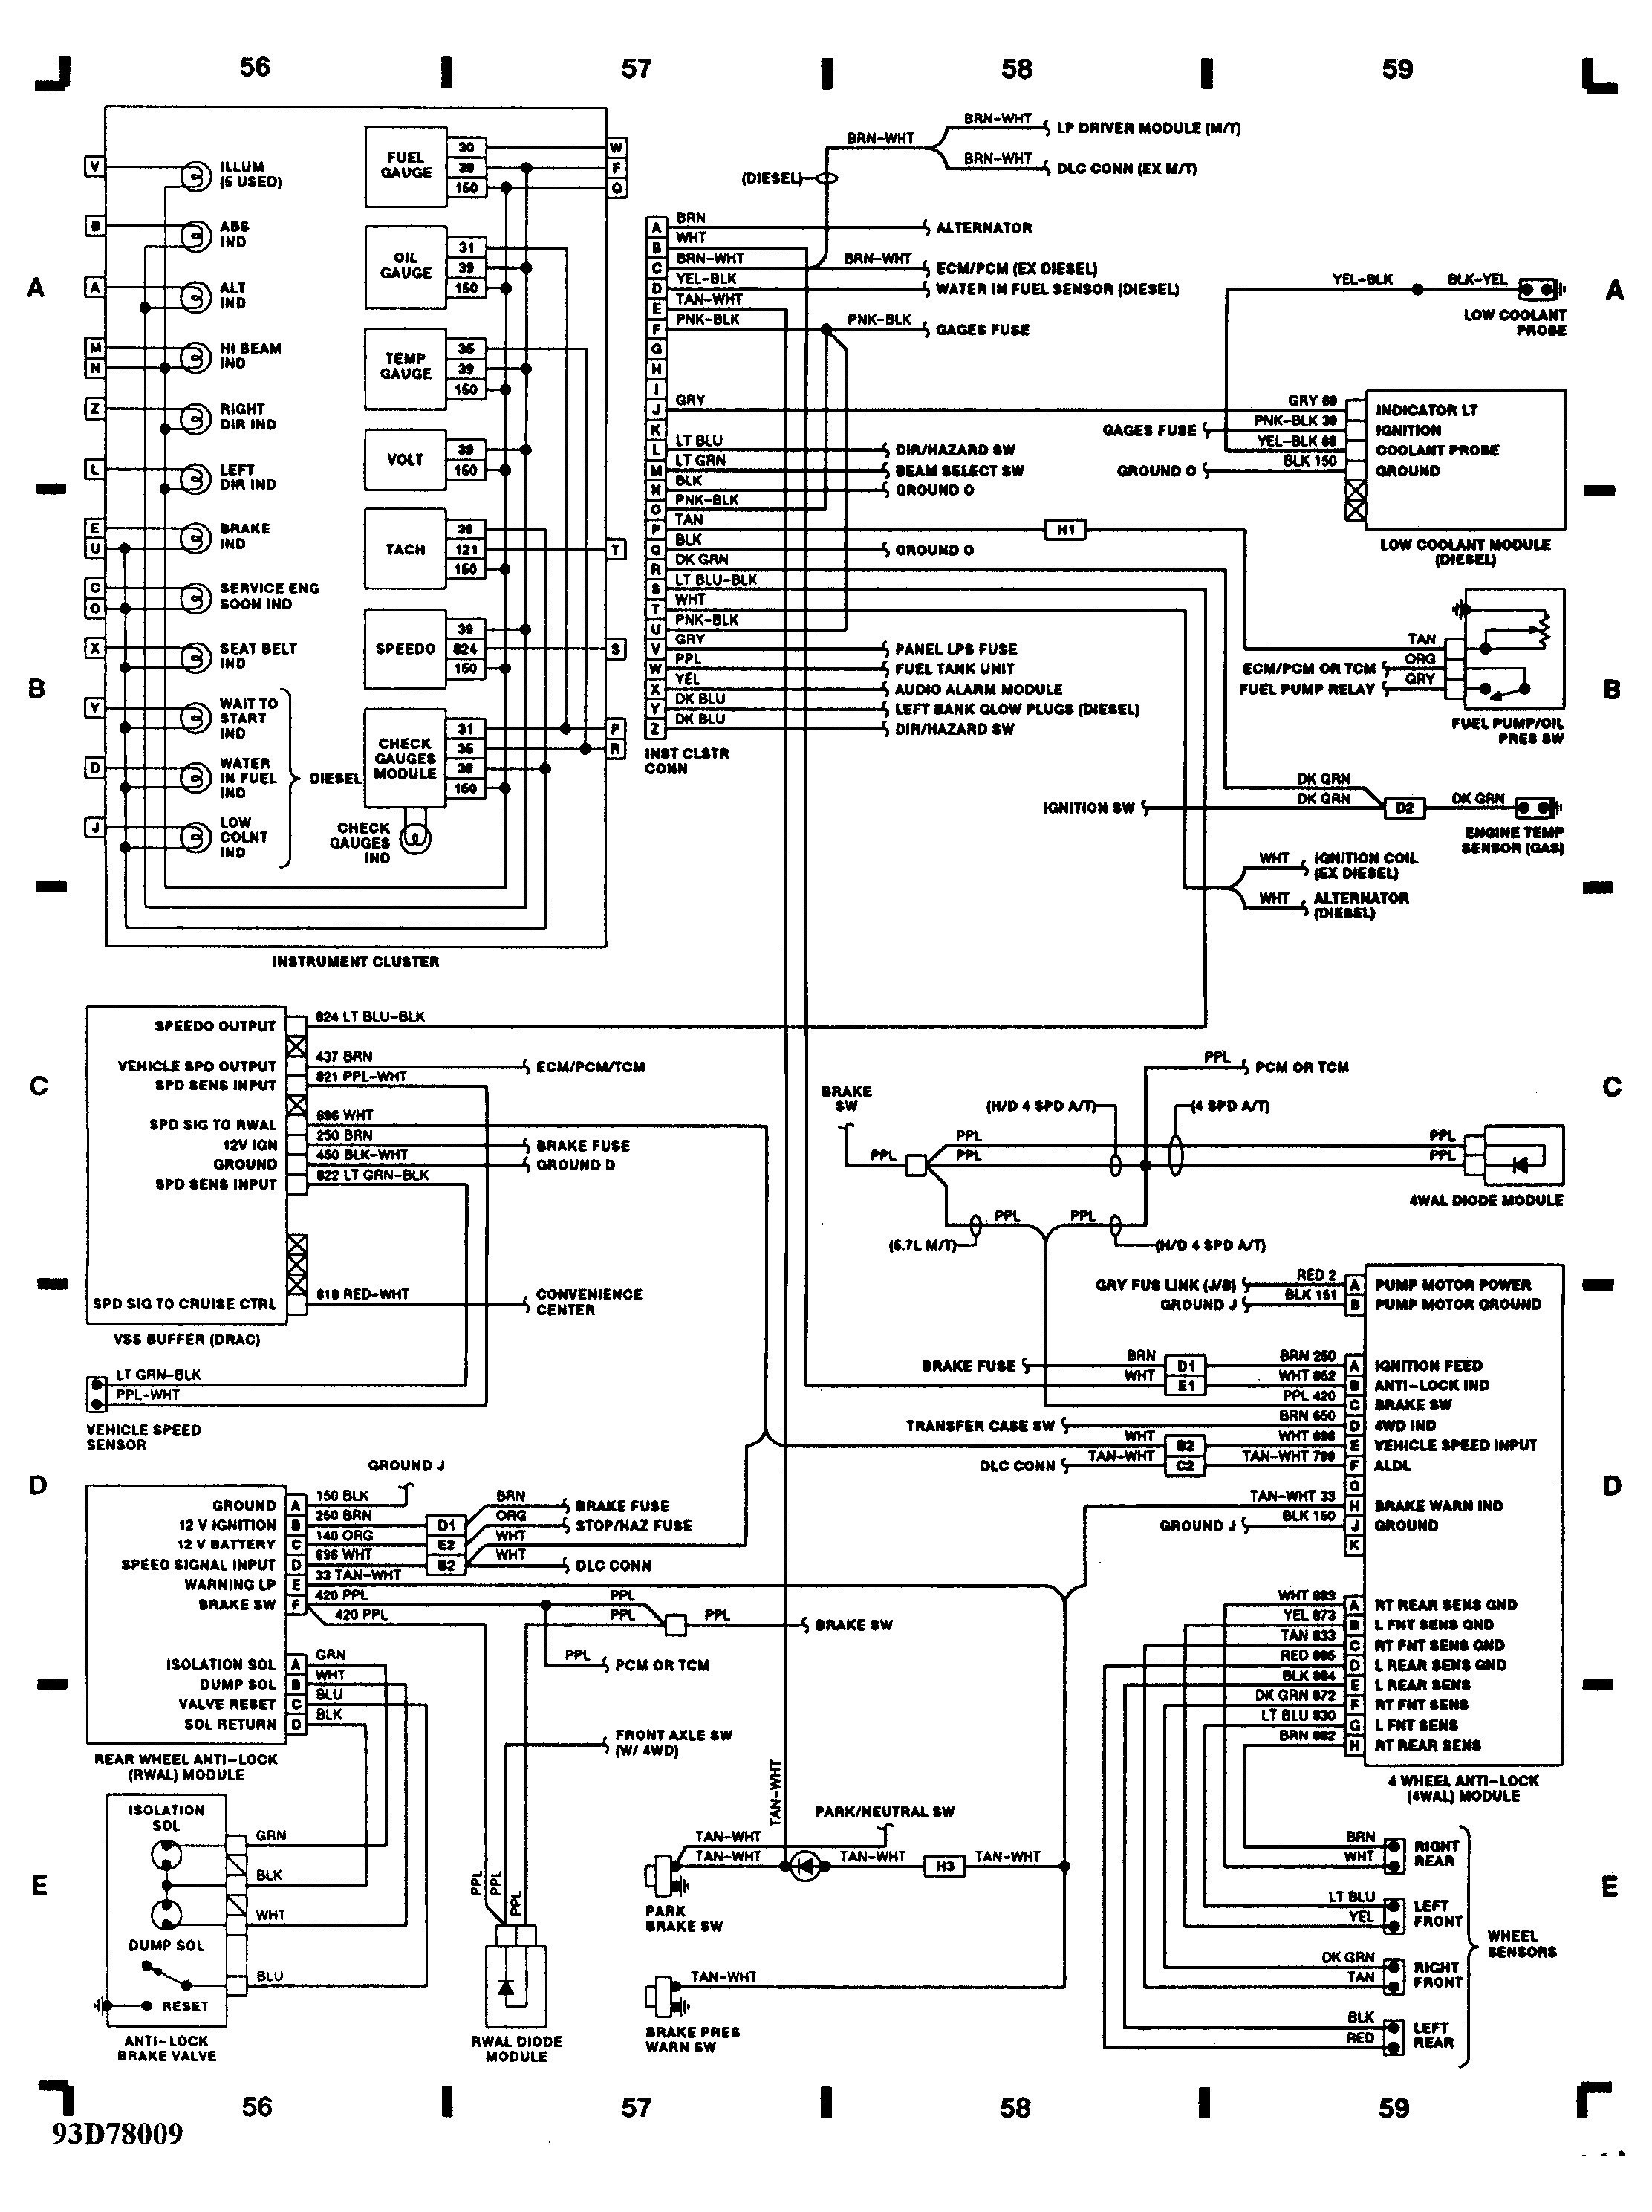 New Tbi Conversion Wiring Diagram Image Harness 5 3 Vortec Engine Schematic Diagrams U2022 Rh Detox Design Co Lt1